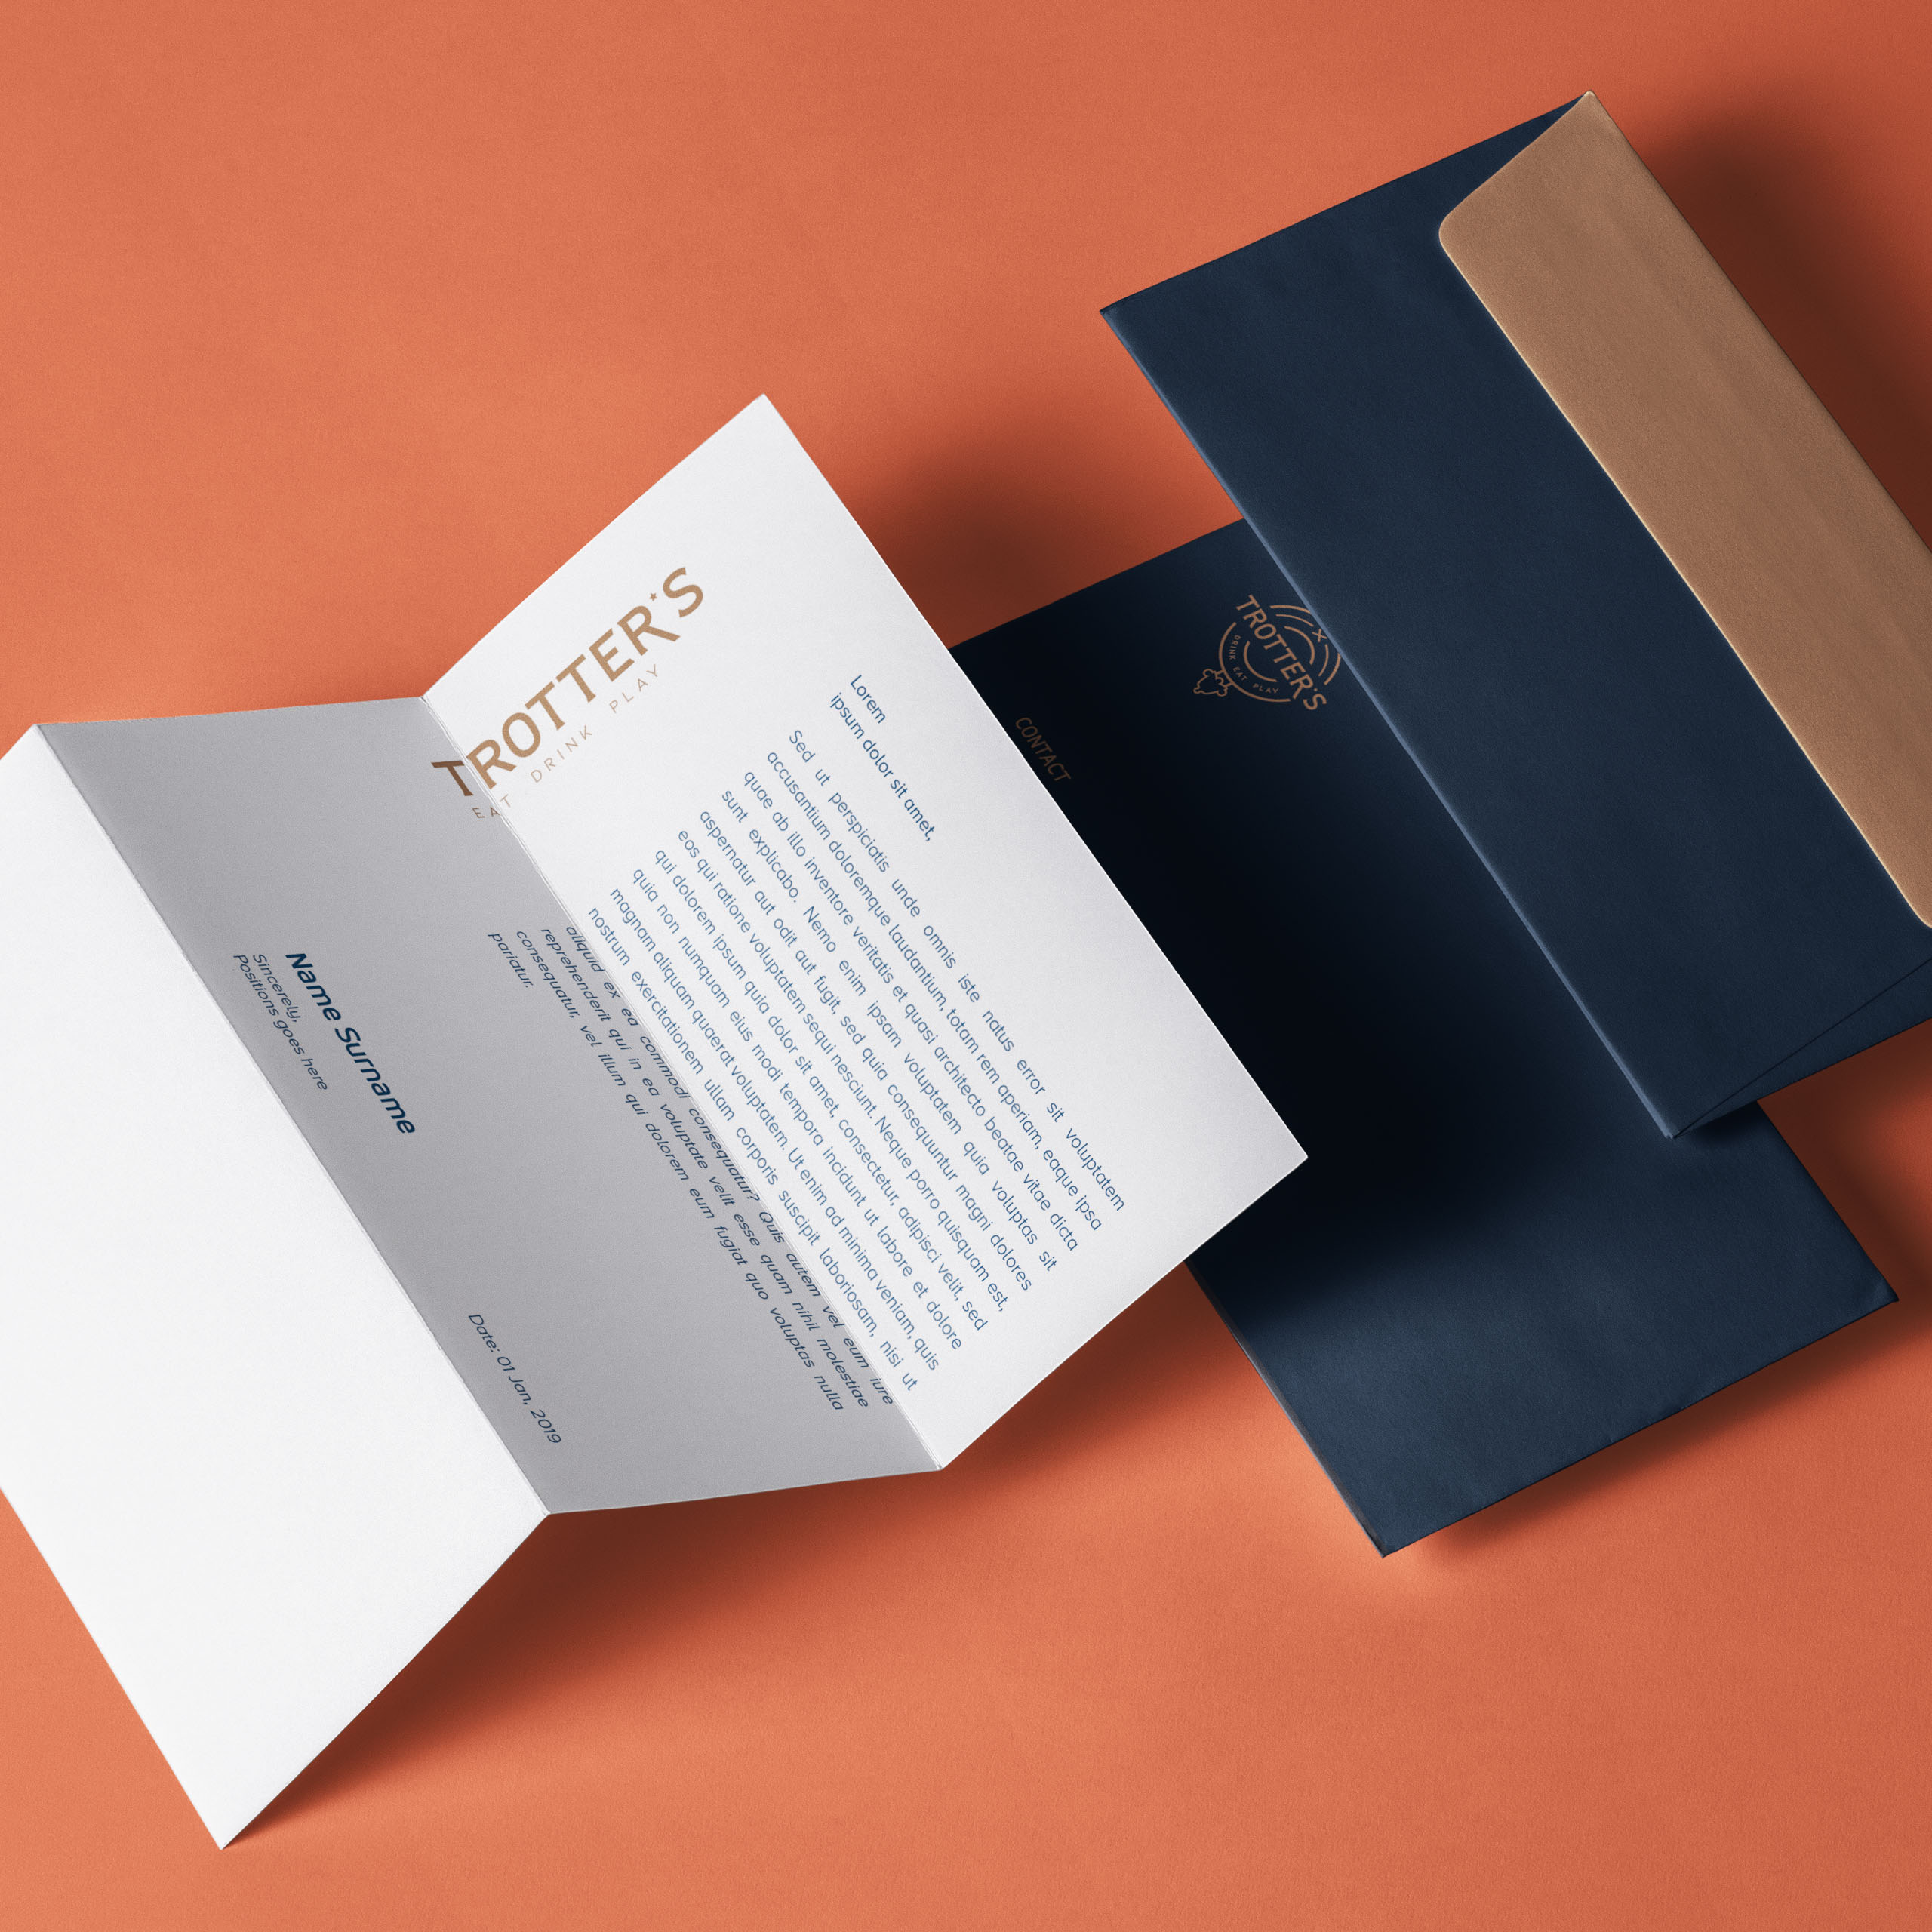 Trotter's Project Img 19 - Vatra Agency / Founder & CEO Gerton Bejo